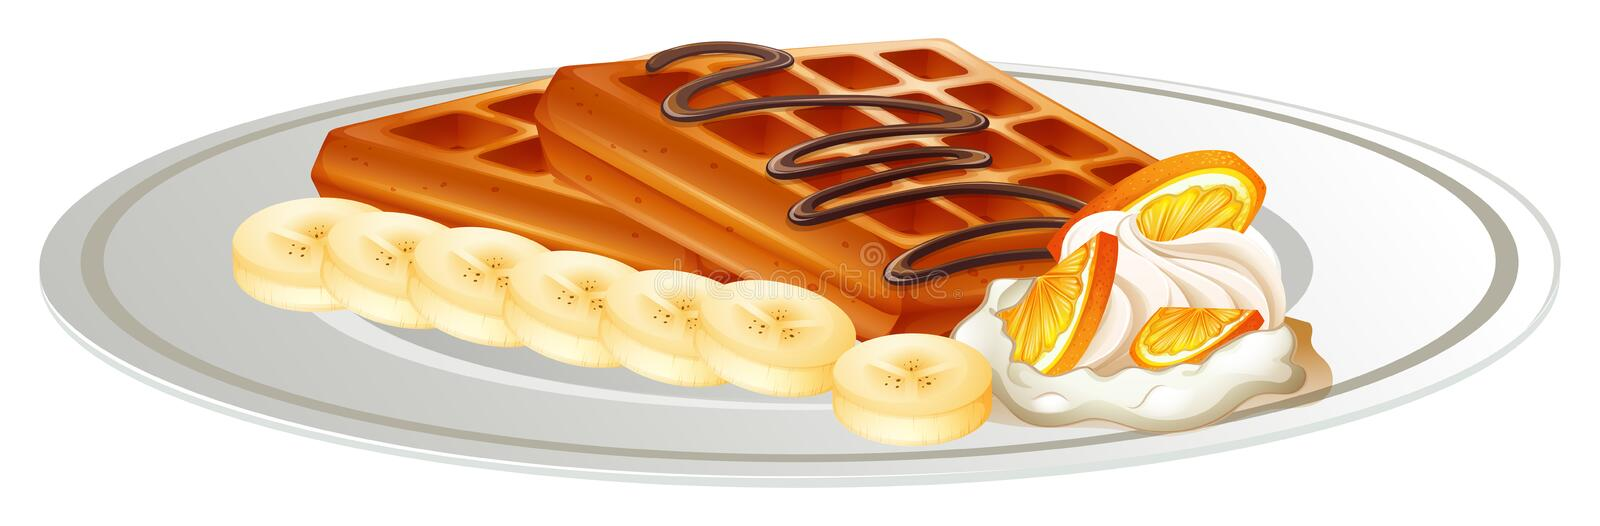 Waffle and banana on the plate. Illustration vector illustration